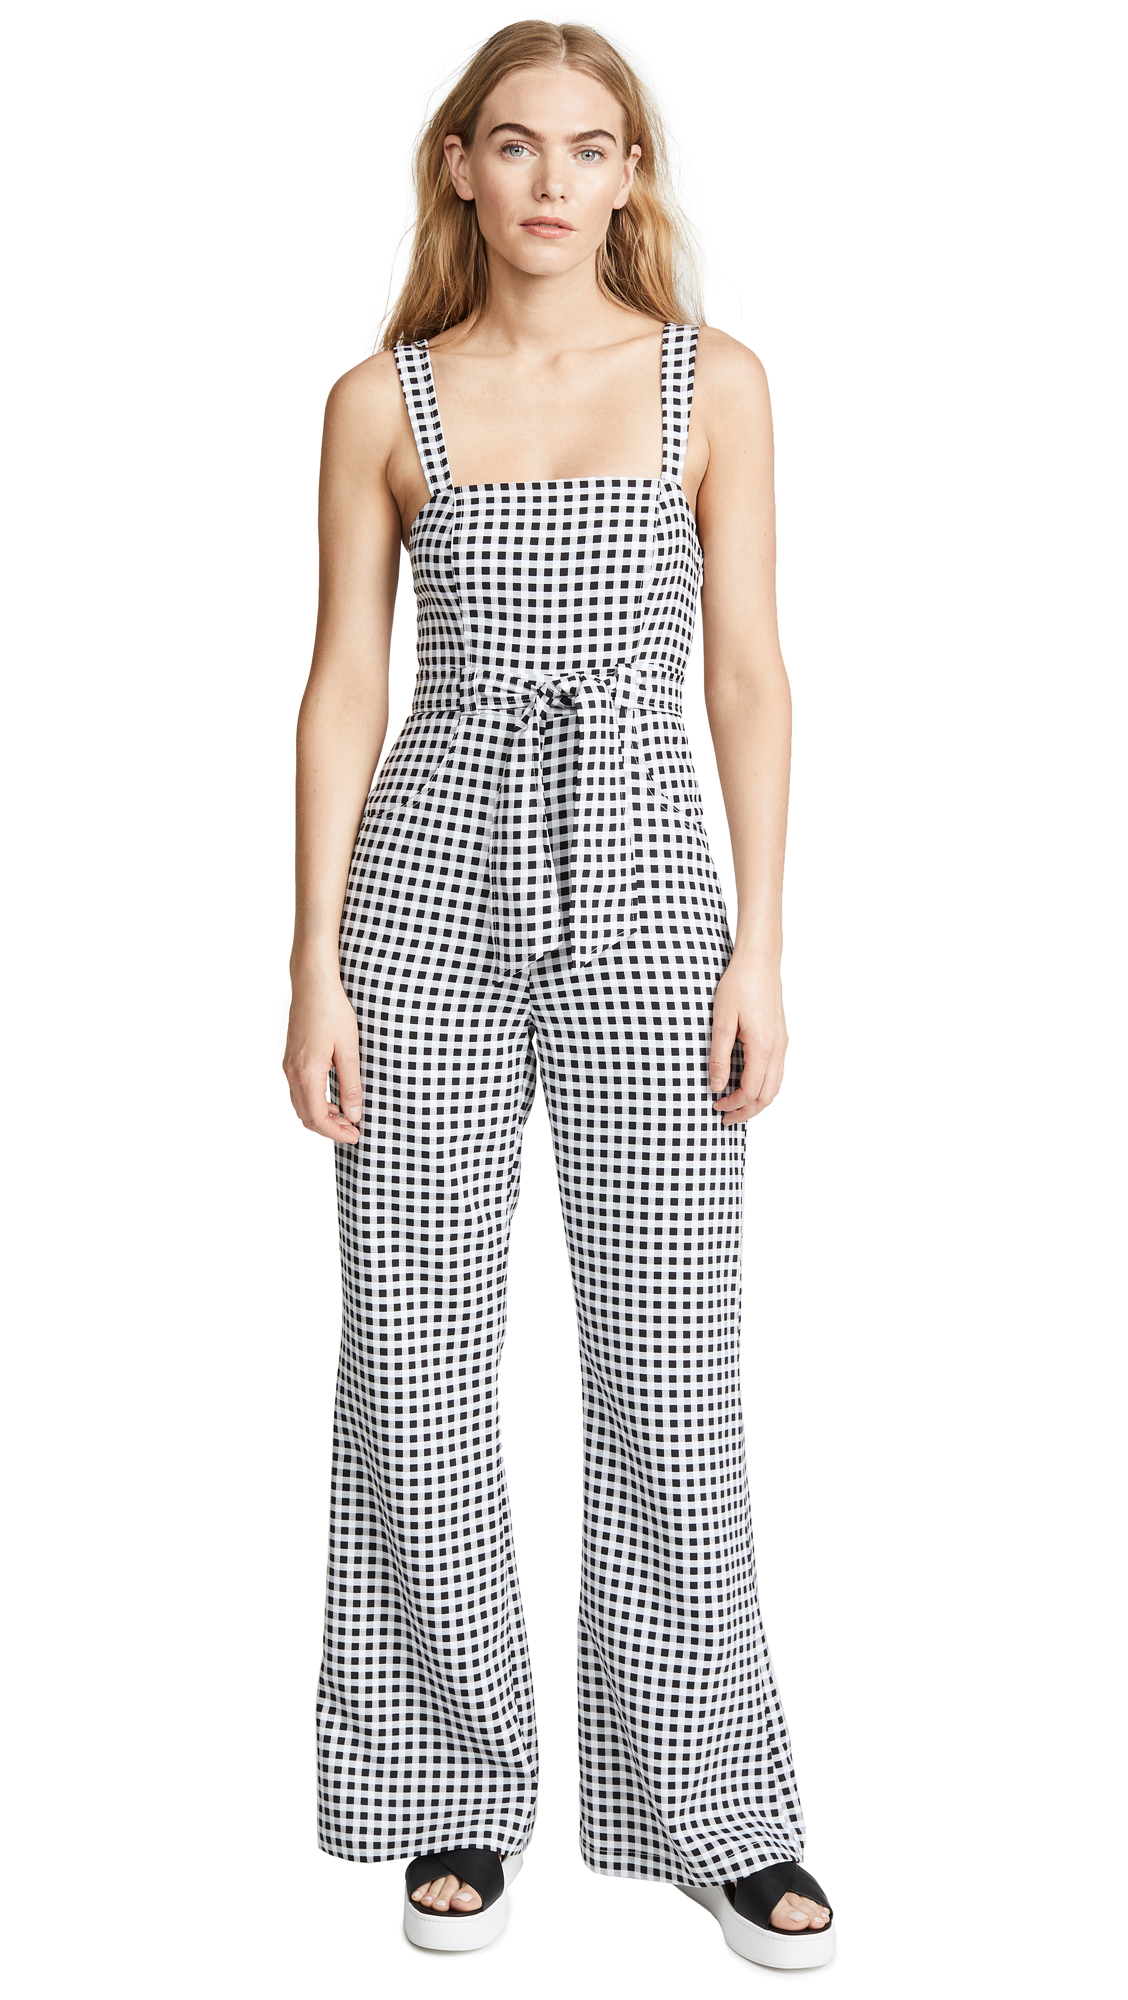 LIKELY Dahlia Jumpsuit In Black/White